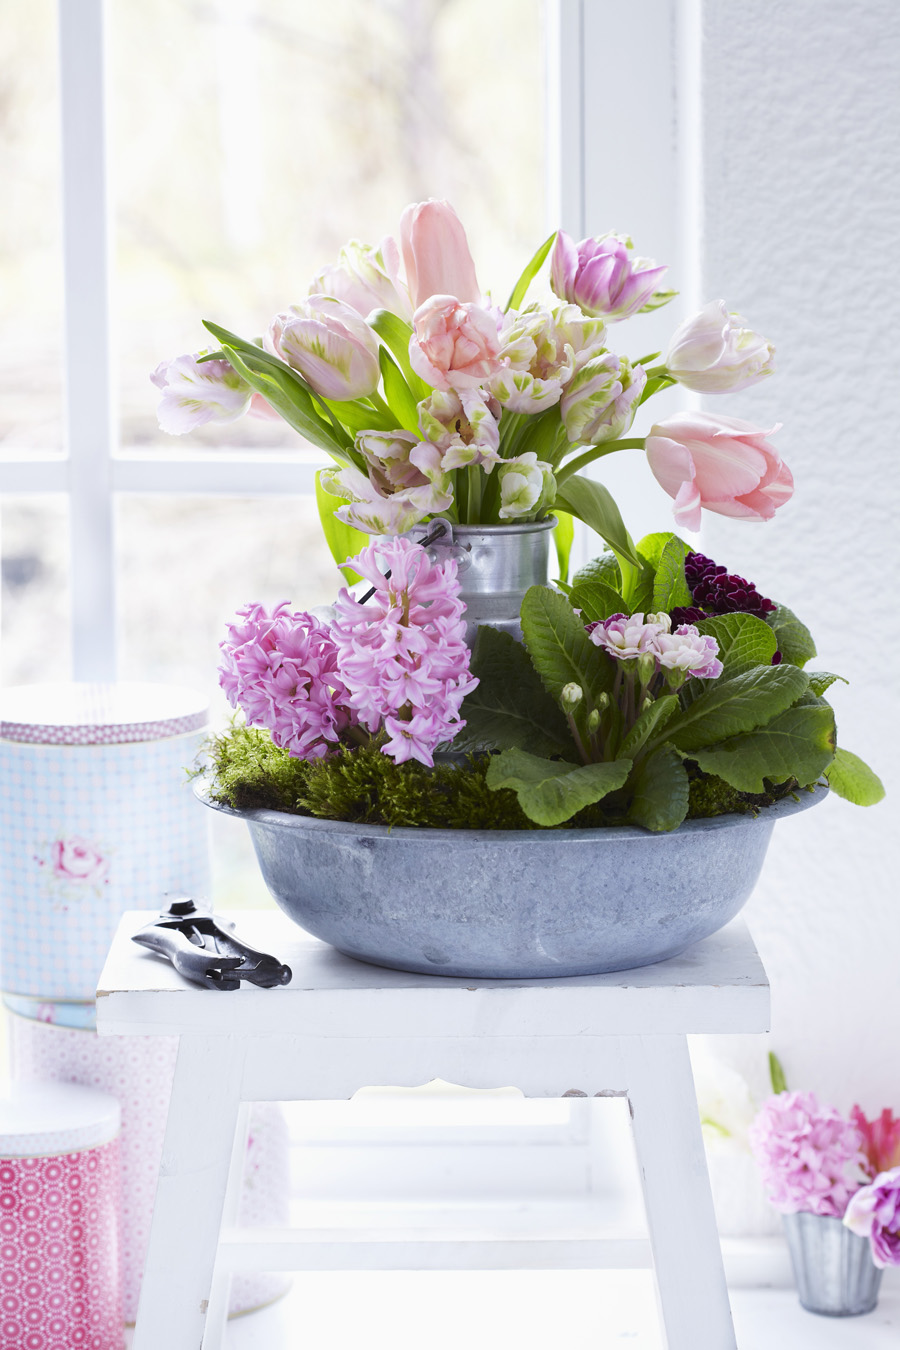 Zinc bowl of pink primulas and hyacinths and bouquet of tulips in milk jug